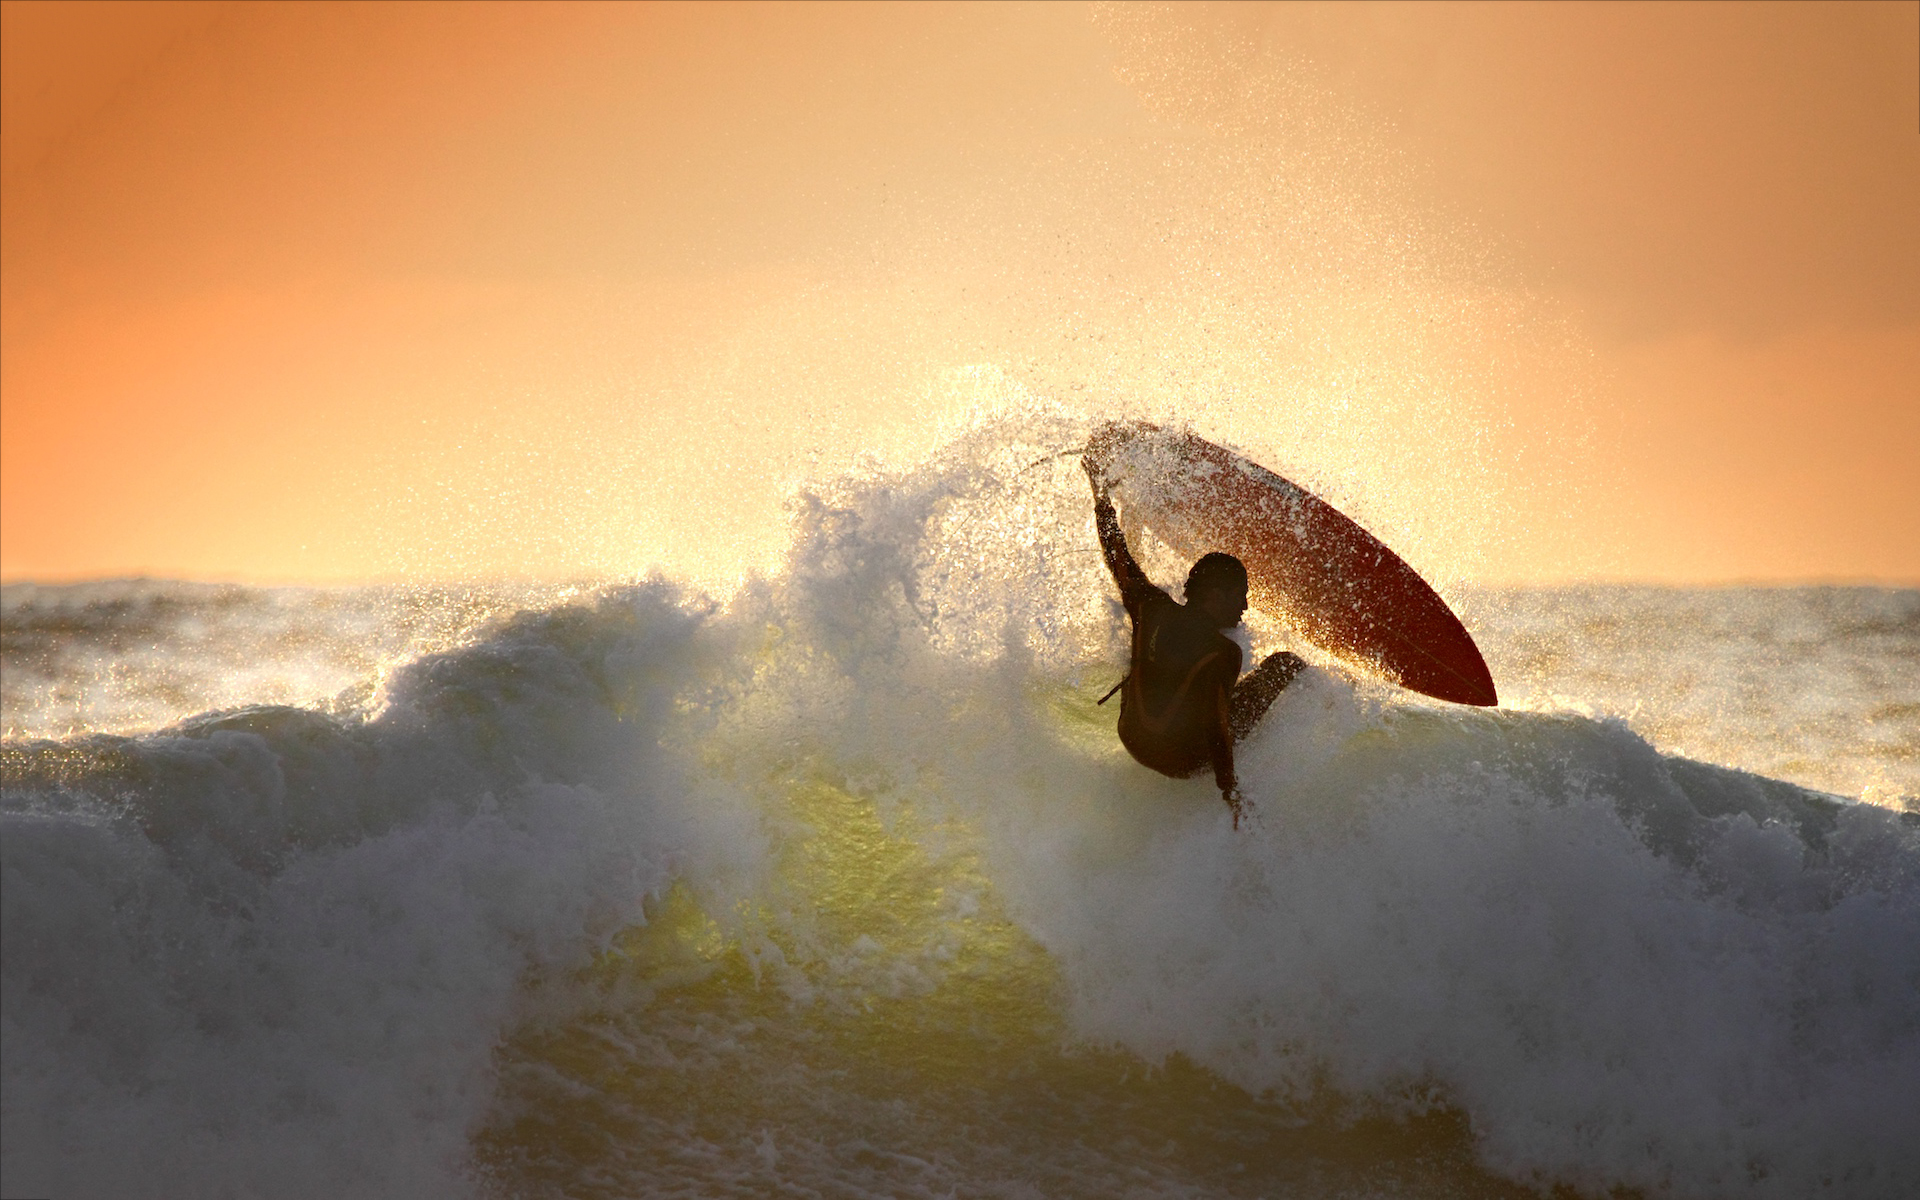 Surfing waves in sunset